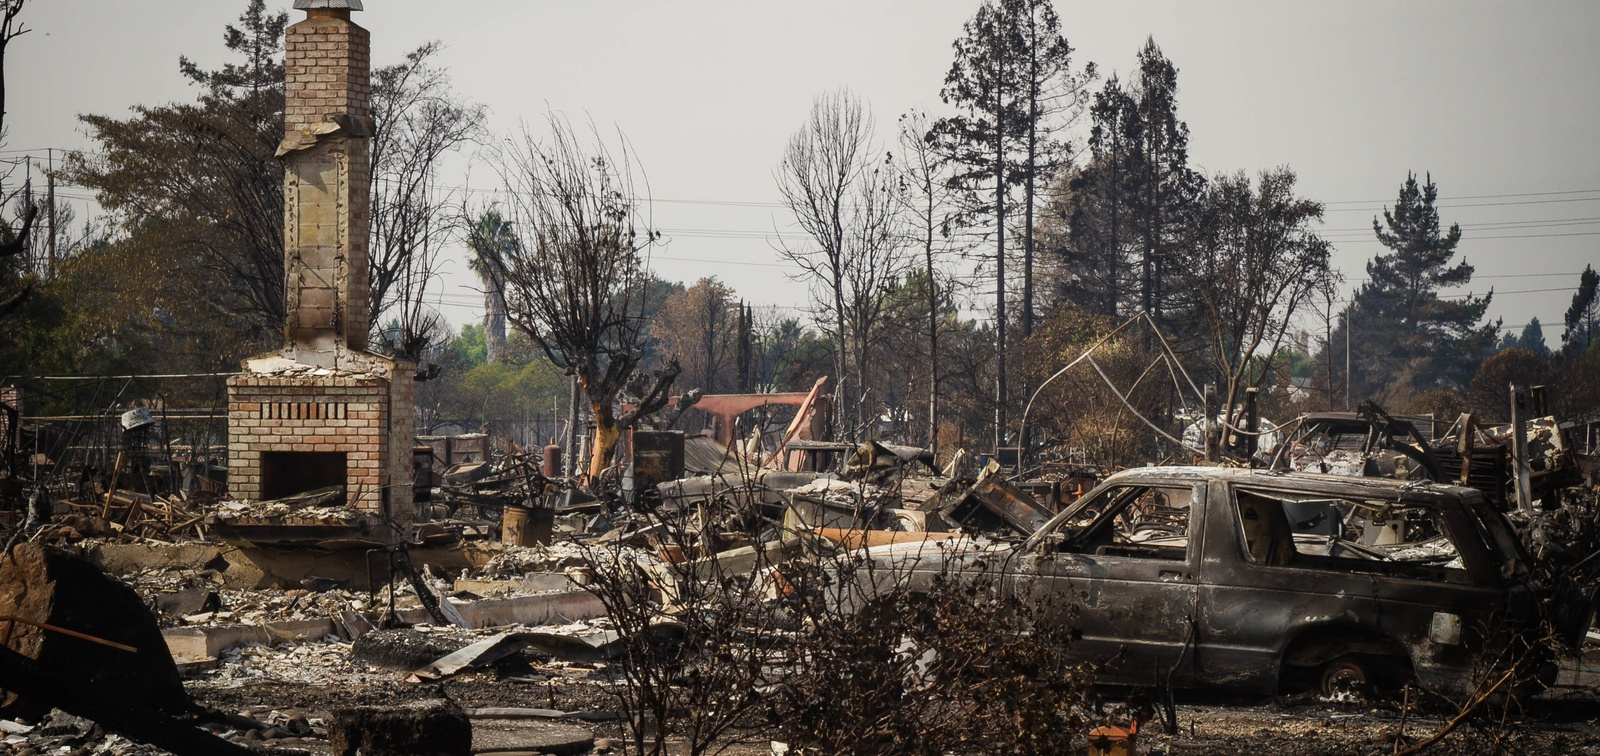 PG&E says fire victims have accepted bankruptcy plan, with final vote count due this week